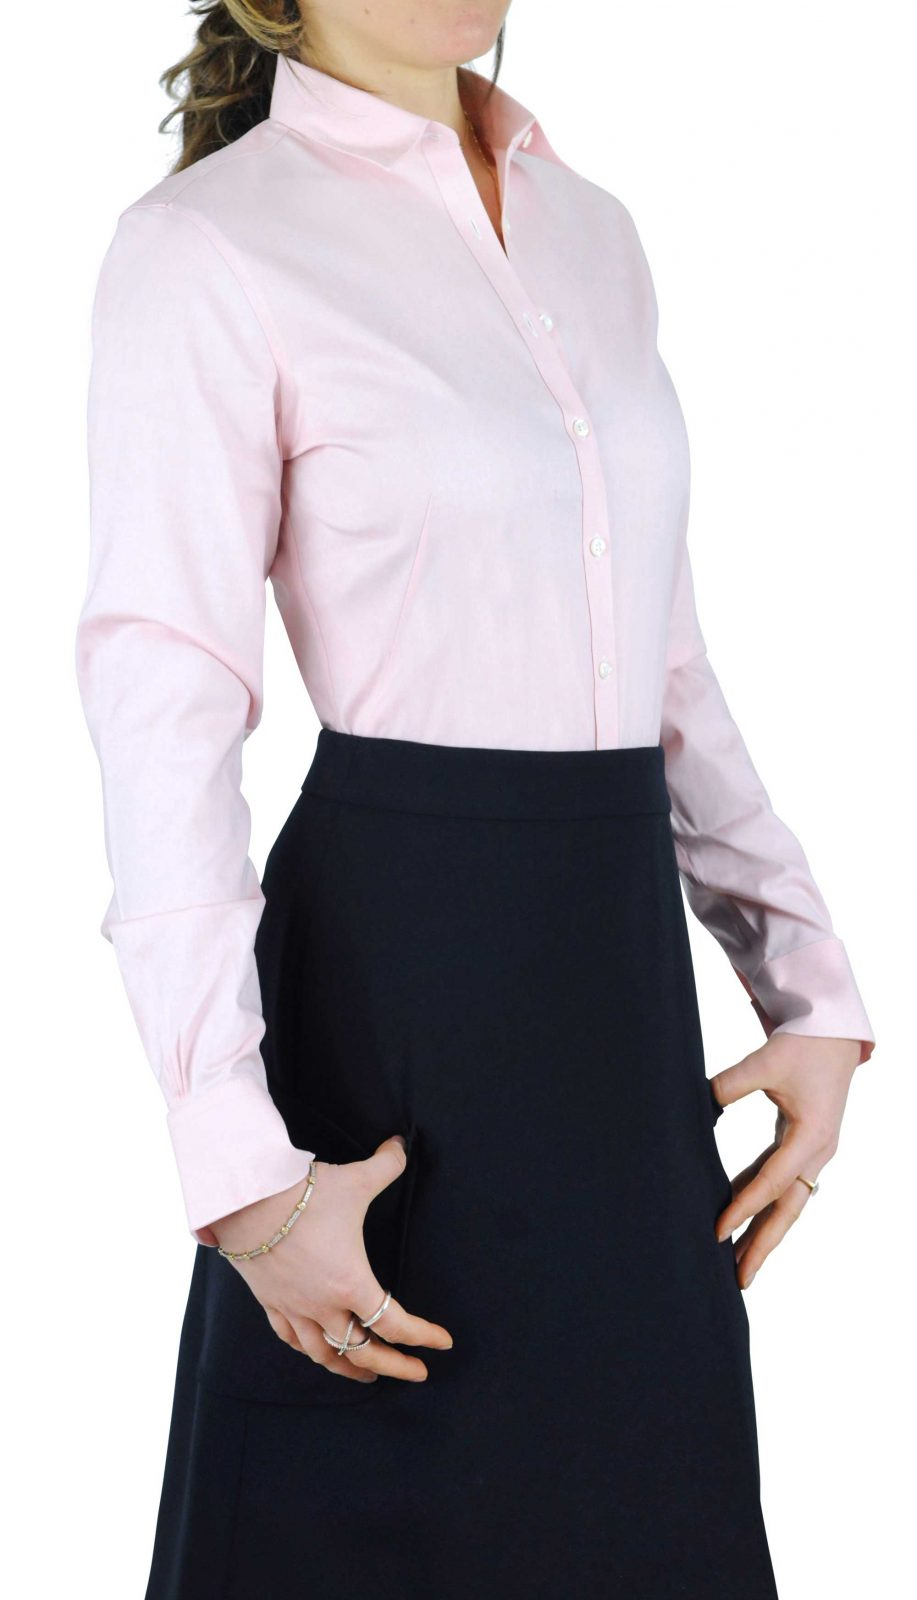 A woman wearing Tuck-N-Stay to keep this pink shirt tucked into the black skirt